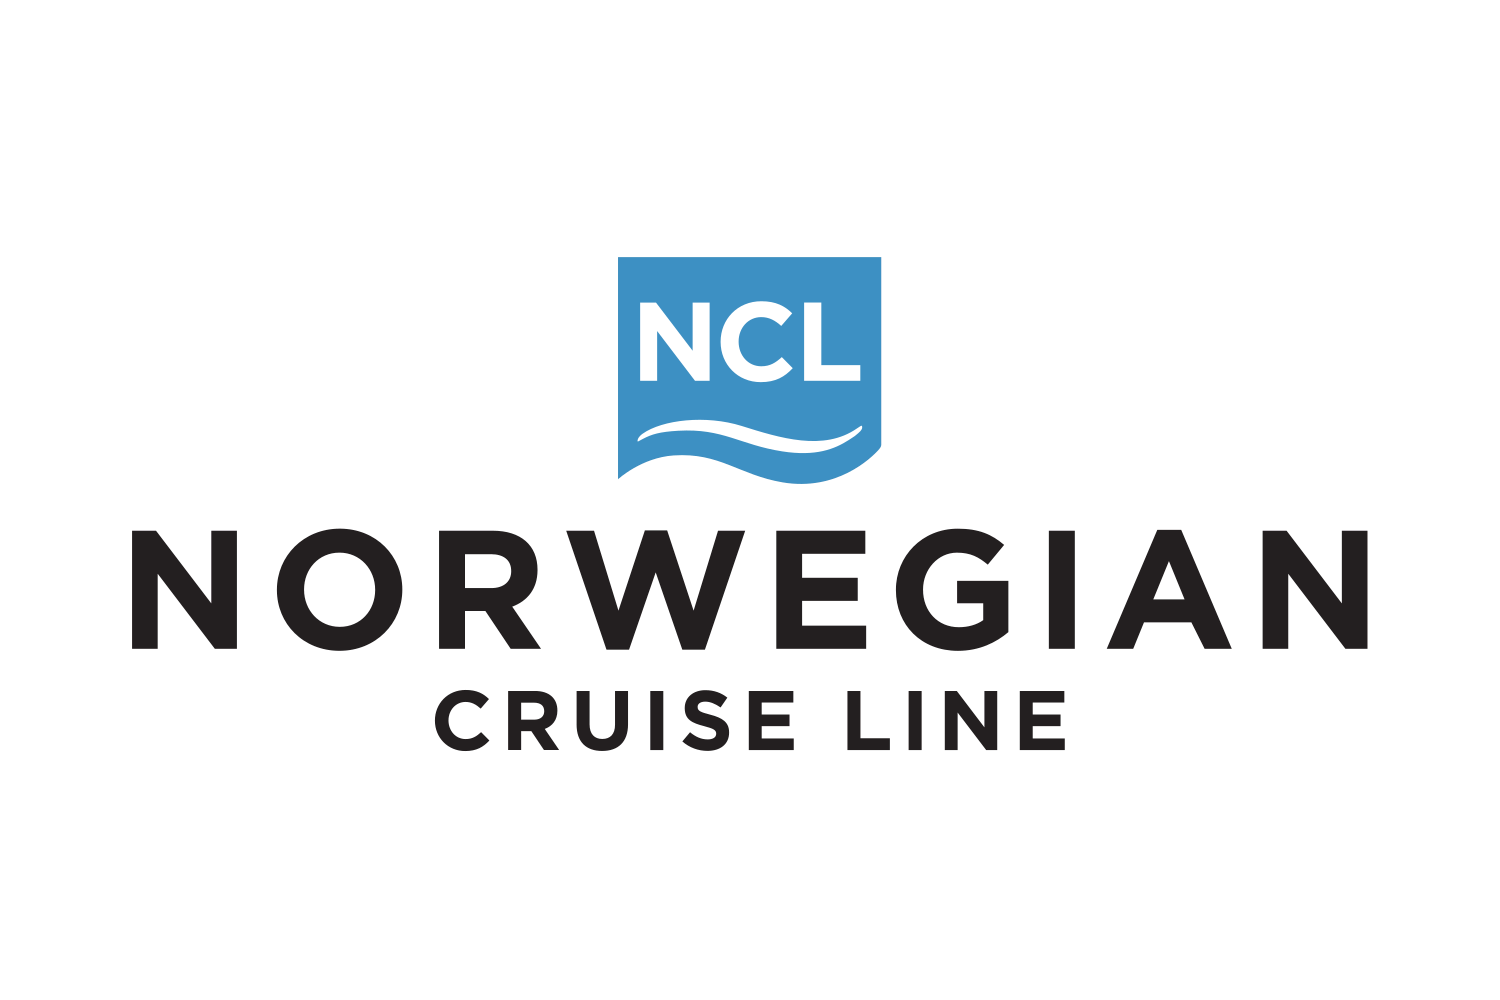 Norwegian Cruise Line - Norwegian Cruise Line has quickly gained popularity among families for their incredible amenities and itineraries. Known for their Haven Suites, Norwegian can accommodate larger parties comfortably.